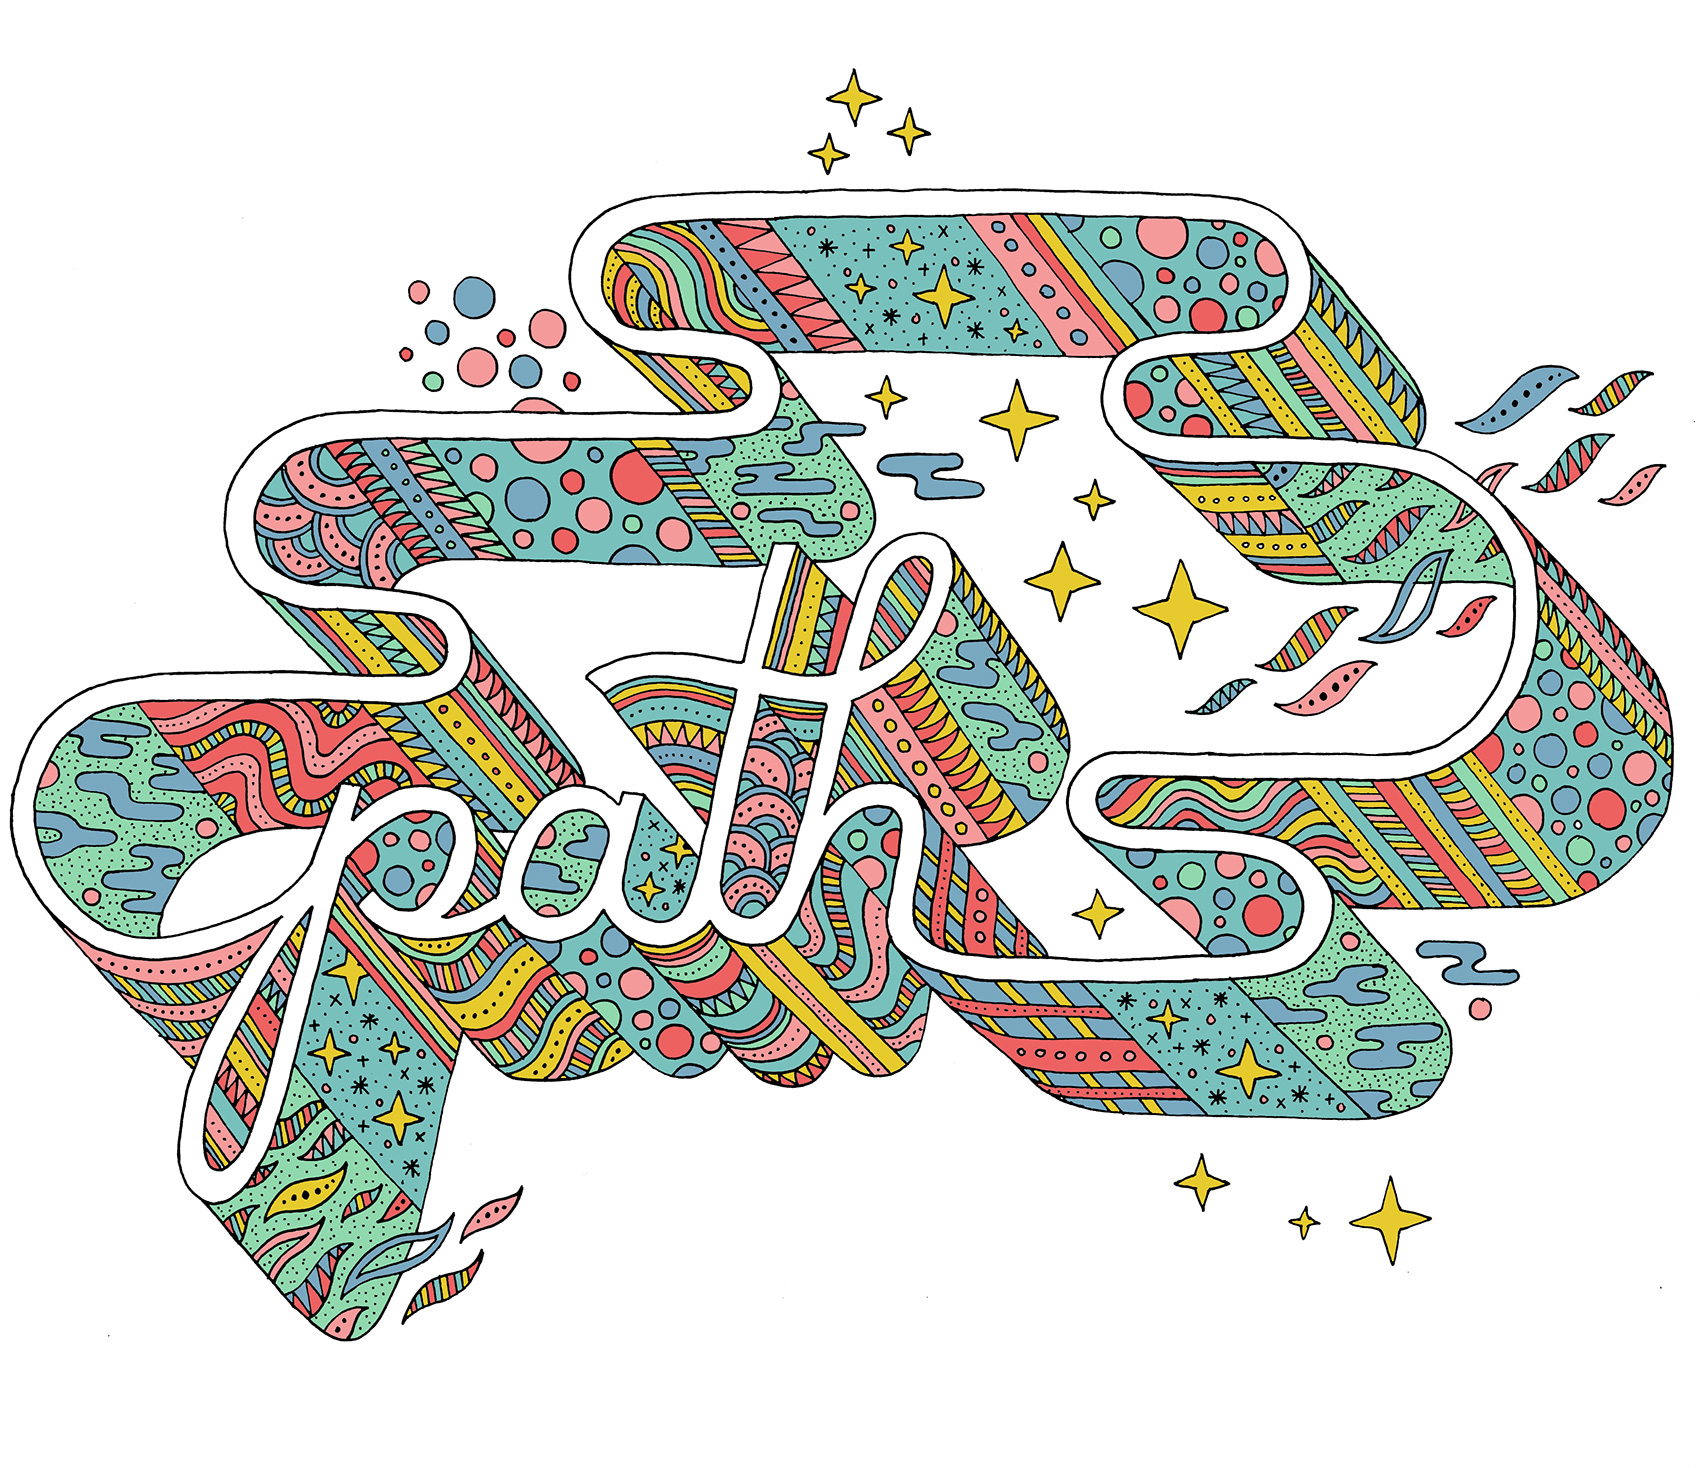 Path typography: filled with patterns and textures in a plethora of summer colors, plus a few sparkly bursts.